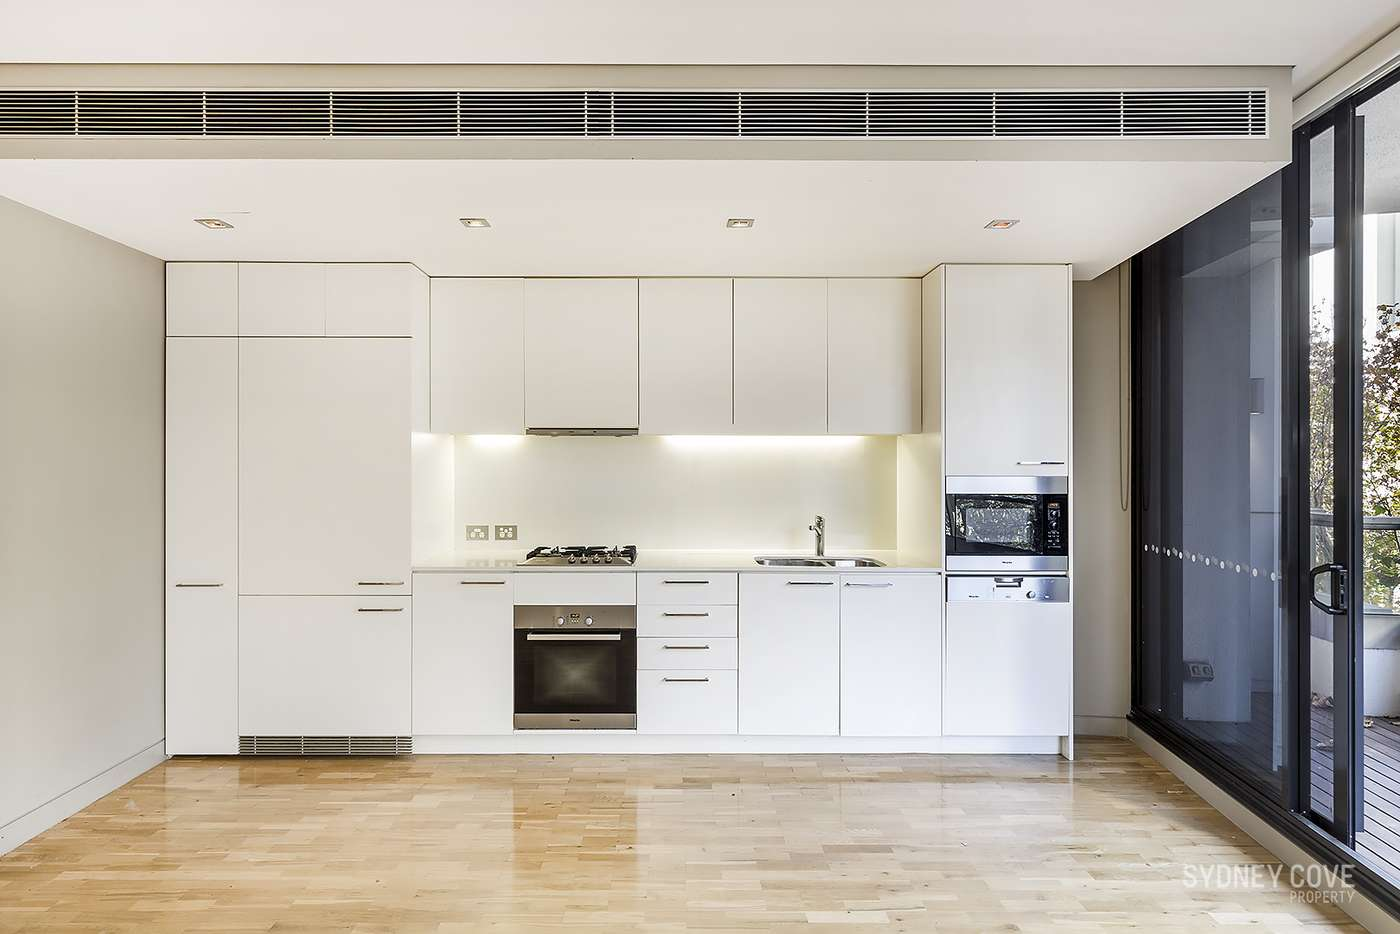 Main view of Homely apartment listing, 171 Gloucester St, Sydney NSW 2000